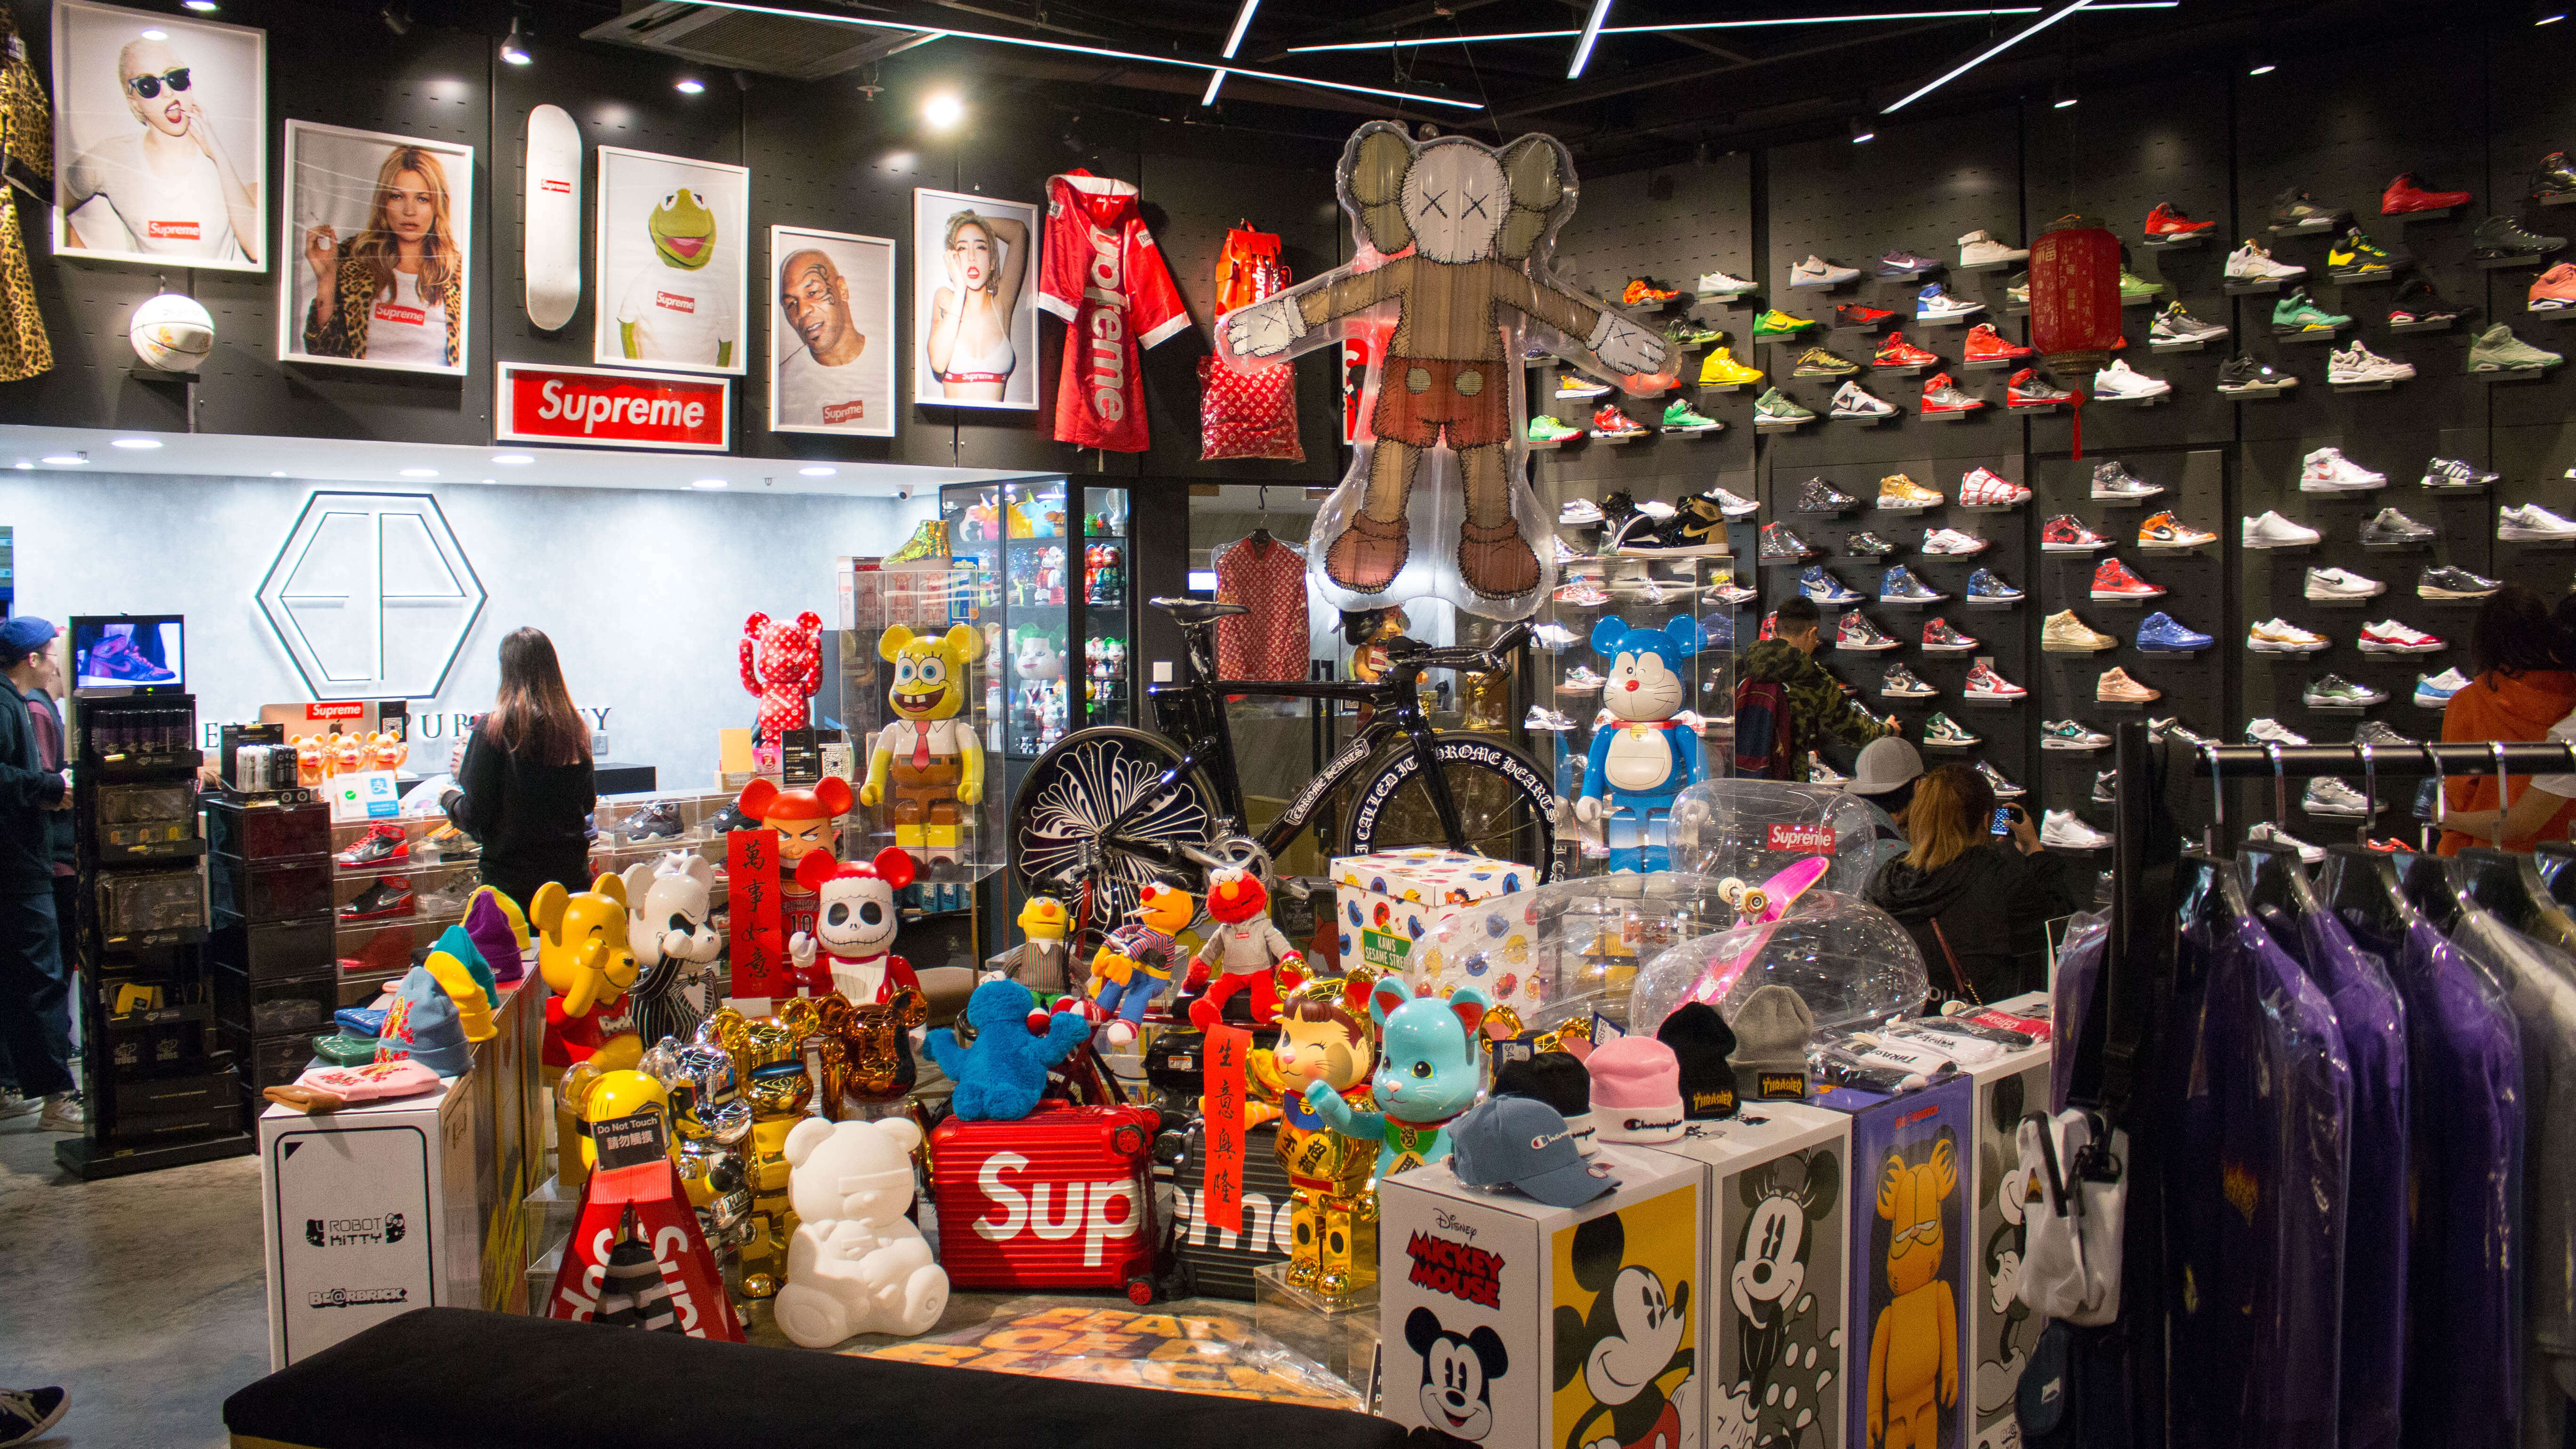 6ff9b809 Extensive Publicity stocks up on everything related to streetwear culture.  These include clothes, Bearbricks and various Supreme accessories